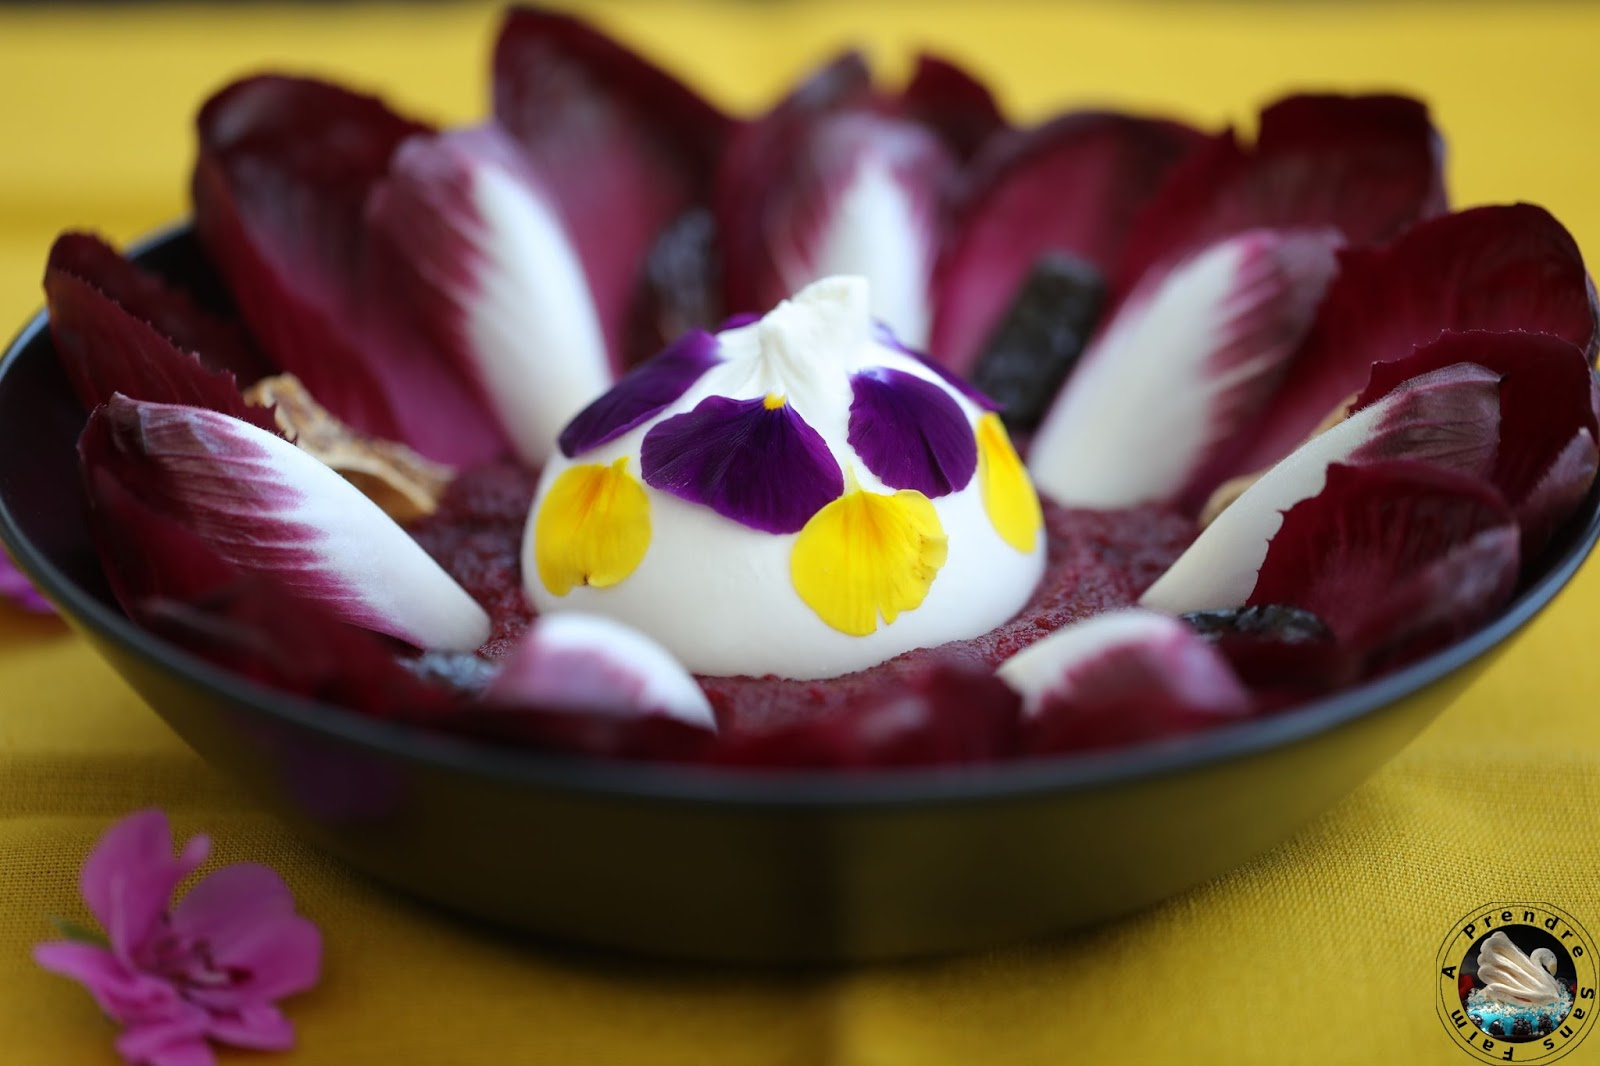 Salade carmine betterave aux fruits secs en cœur de burrata